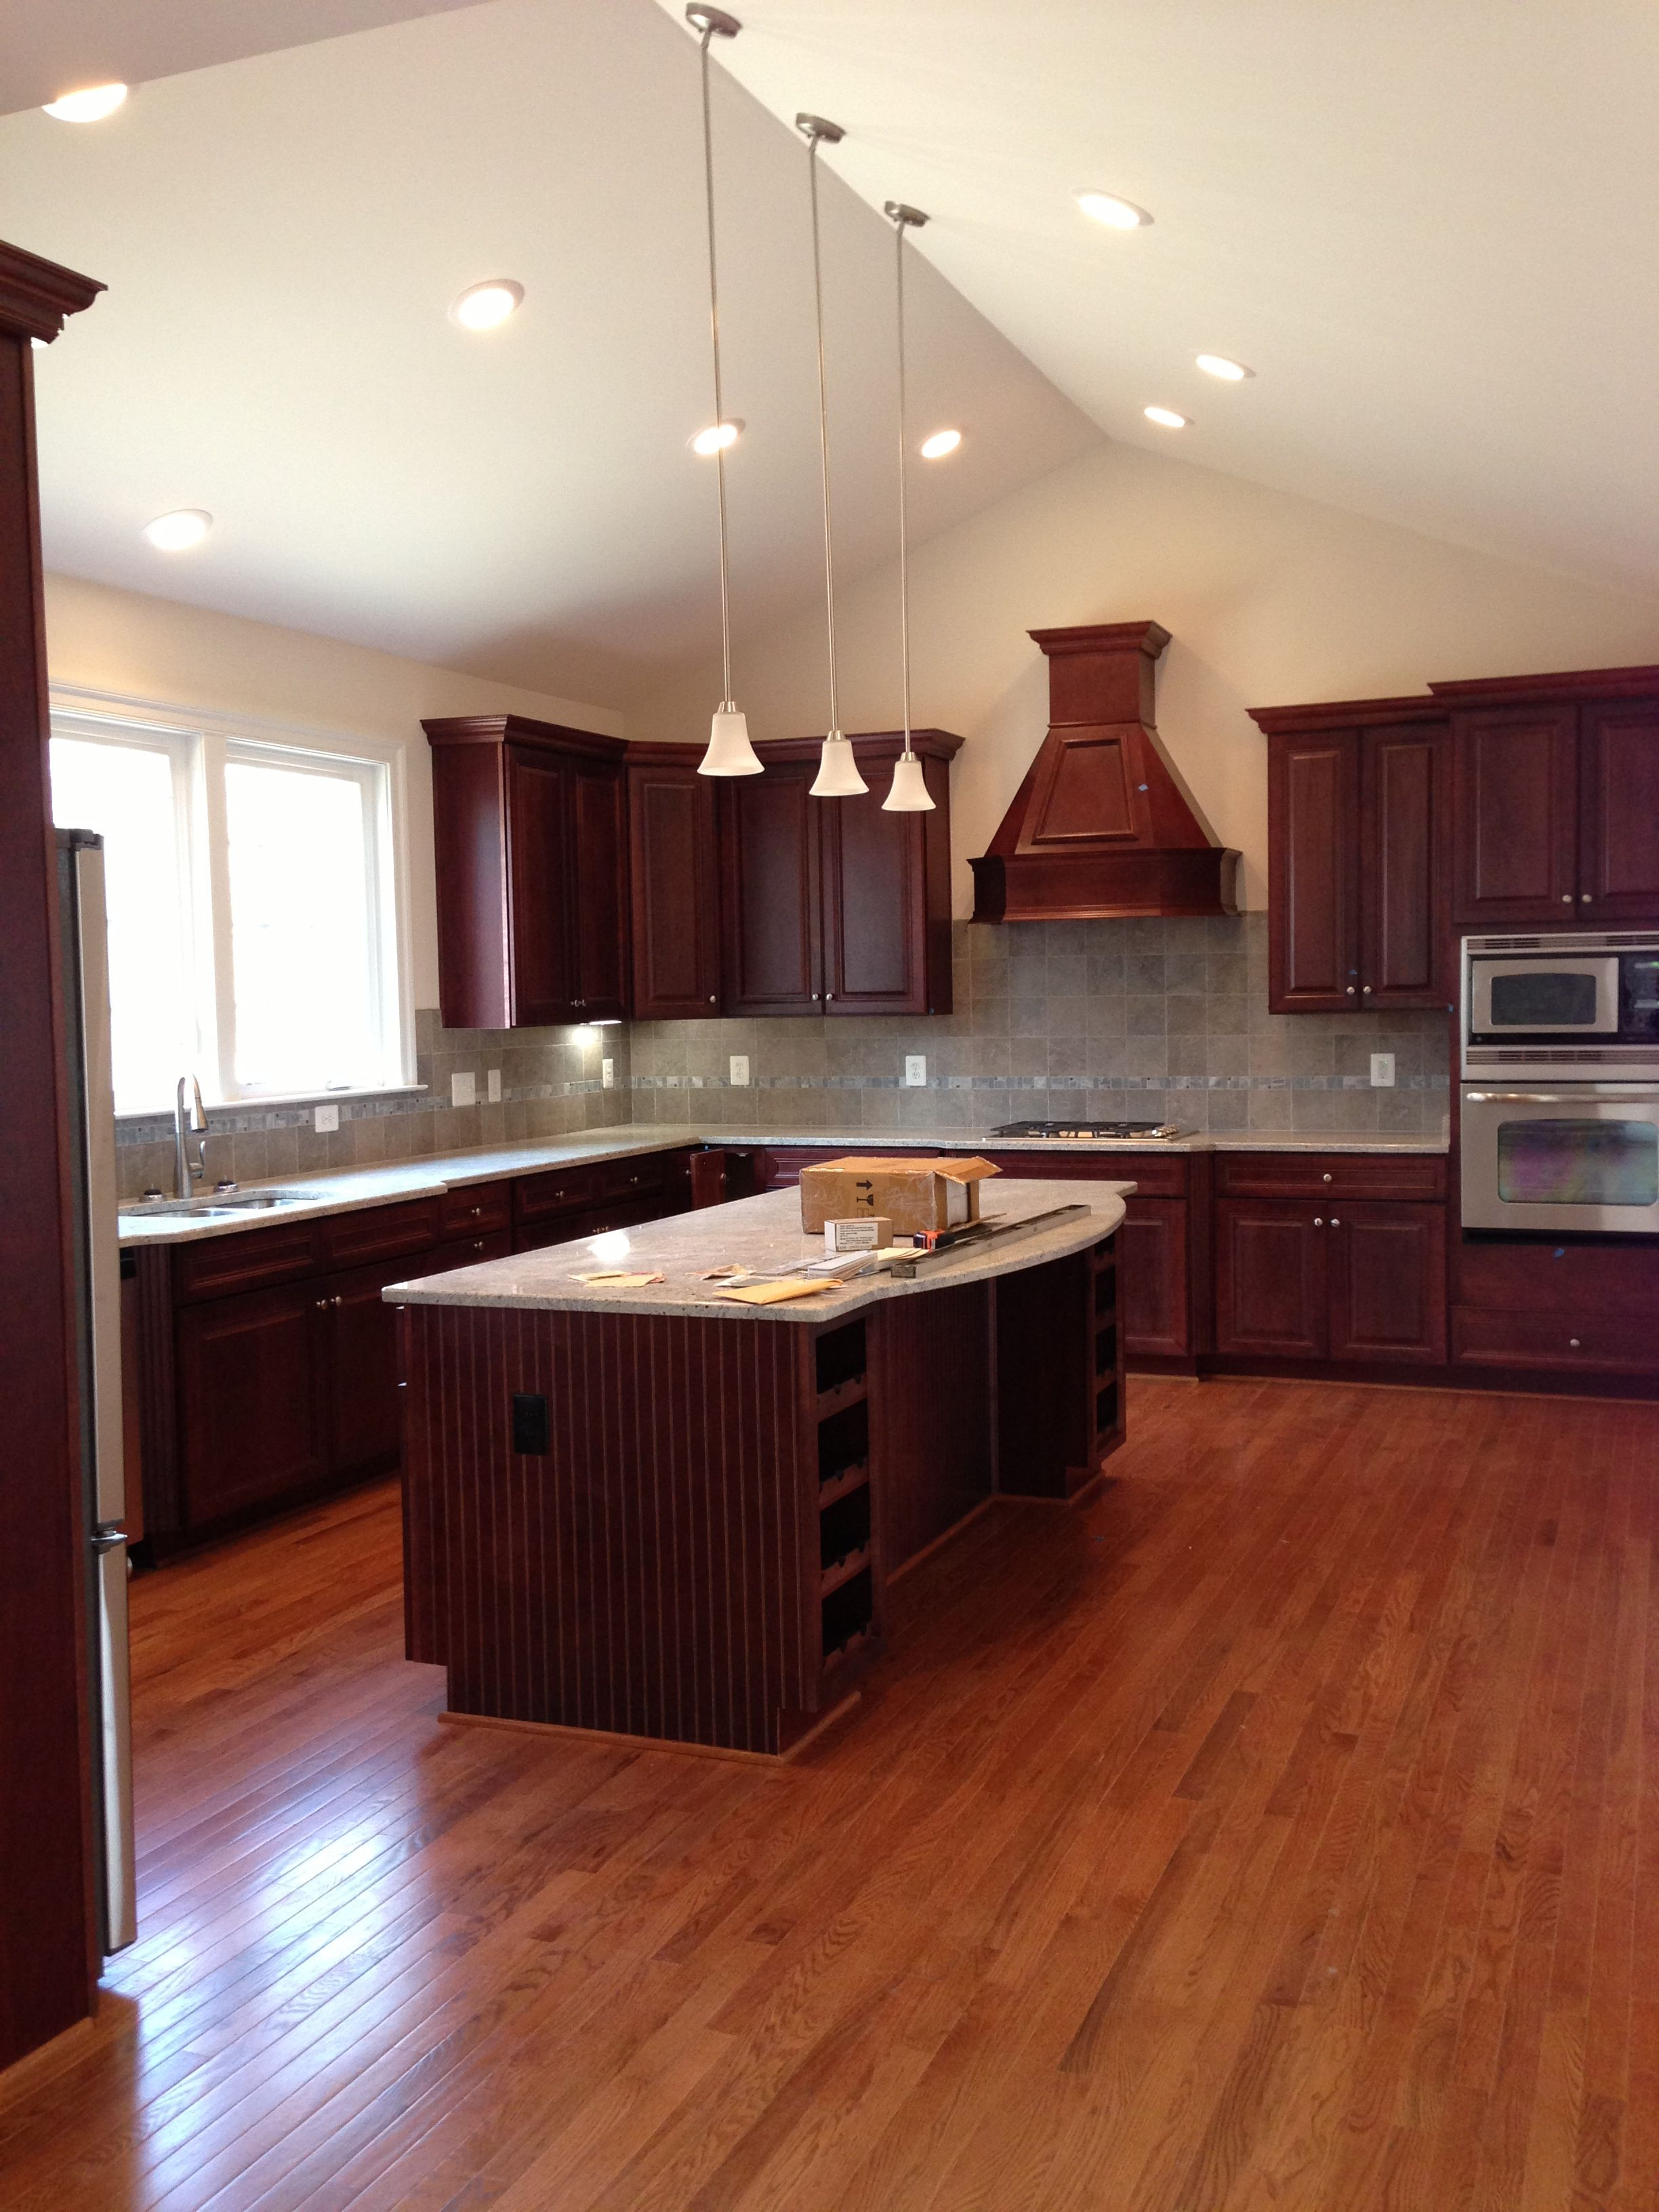 Kitchen Cherry Cabinets With Gray Tile Hardwood Floor Colors Kitchen Flooring Design My Kitchen